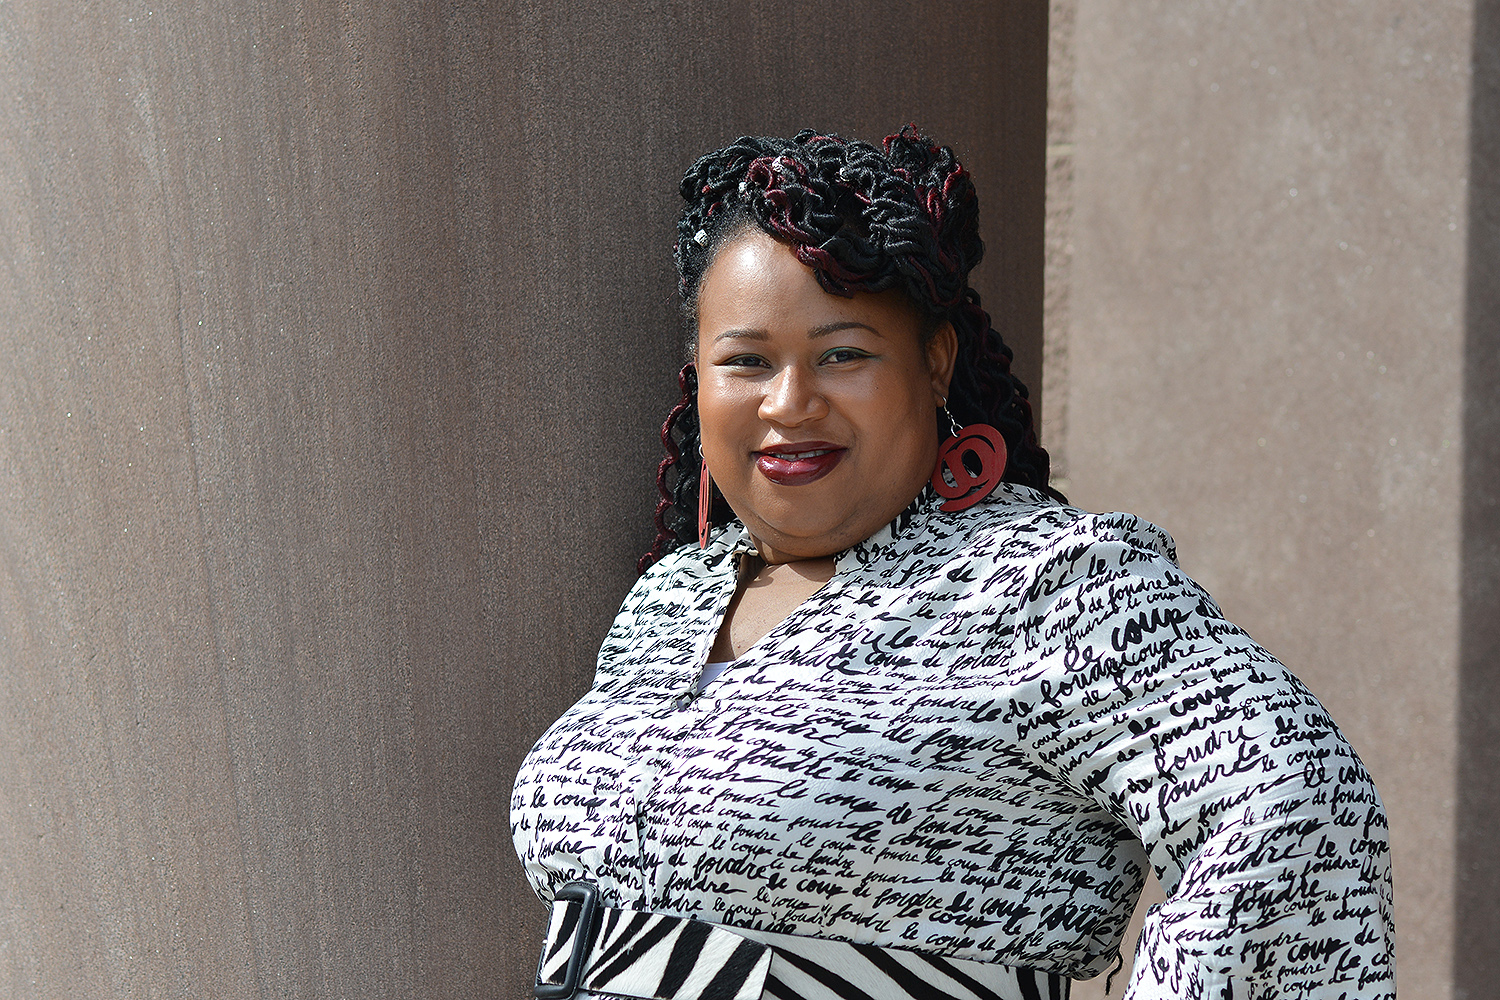 Teshia Levy-Grant '00 is the dean for equity and inclusion at Wesleyan.